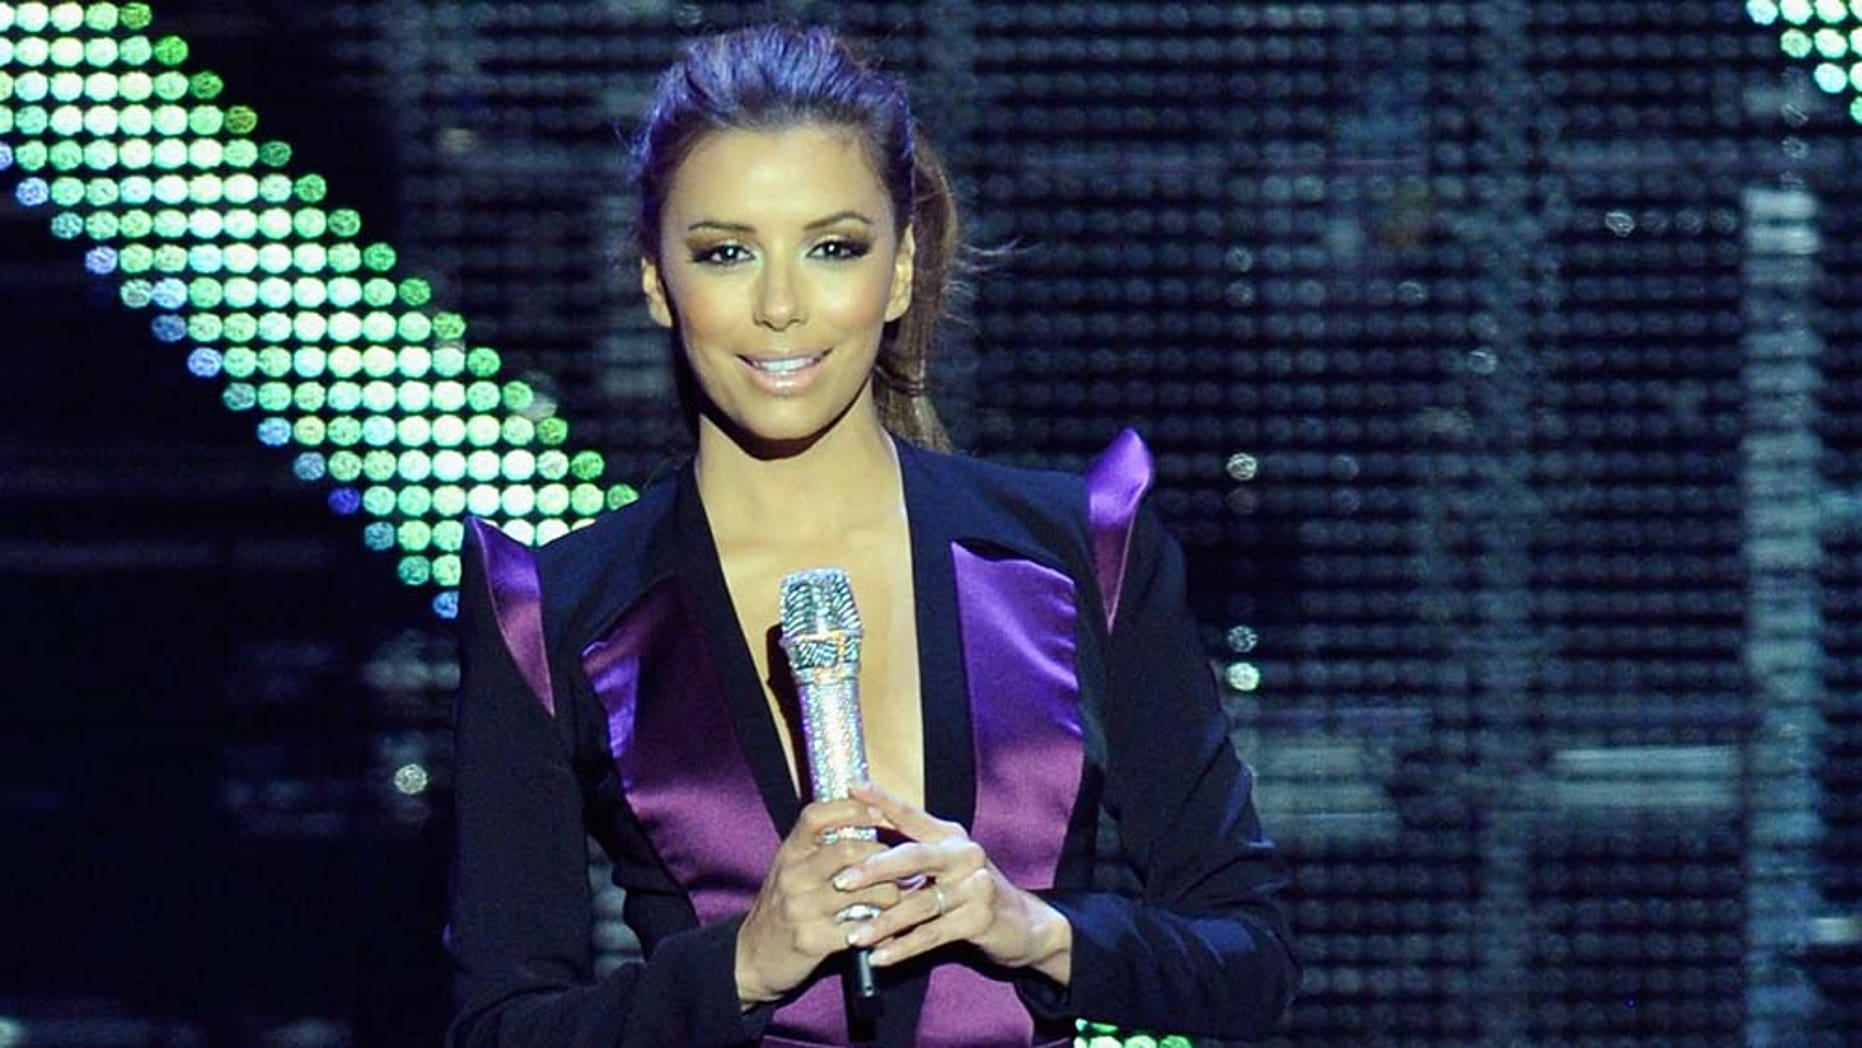 MADRID, SPAIN - NOVEMBER 07:  Host Eva Longoria Parker on stage during the MTV Europe Music Awards 2010 live show at La Caja Magica on November 7, 2010 in Madrid, Spain. (Photo by Gareth Cattermole/Getty Images)